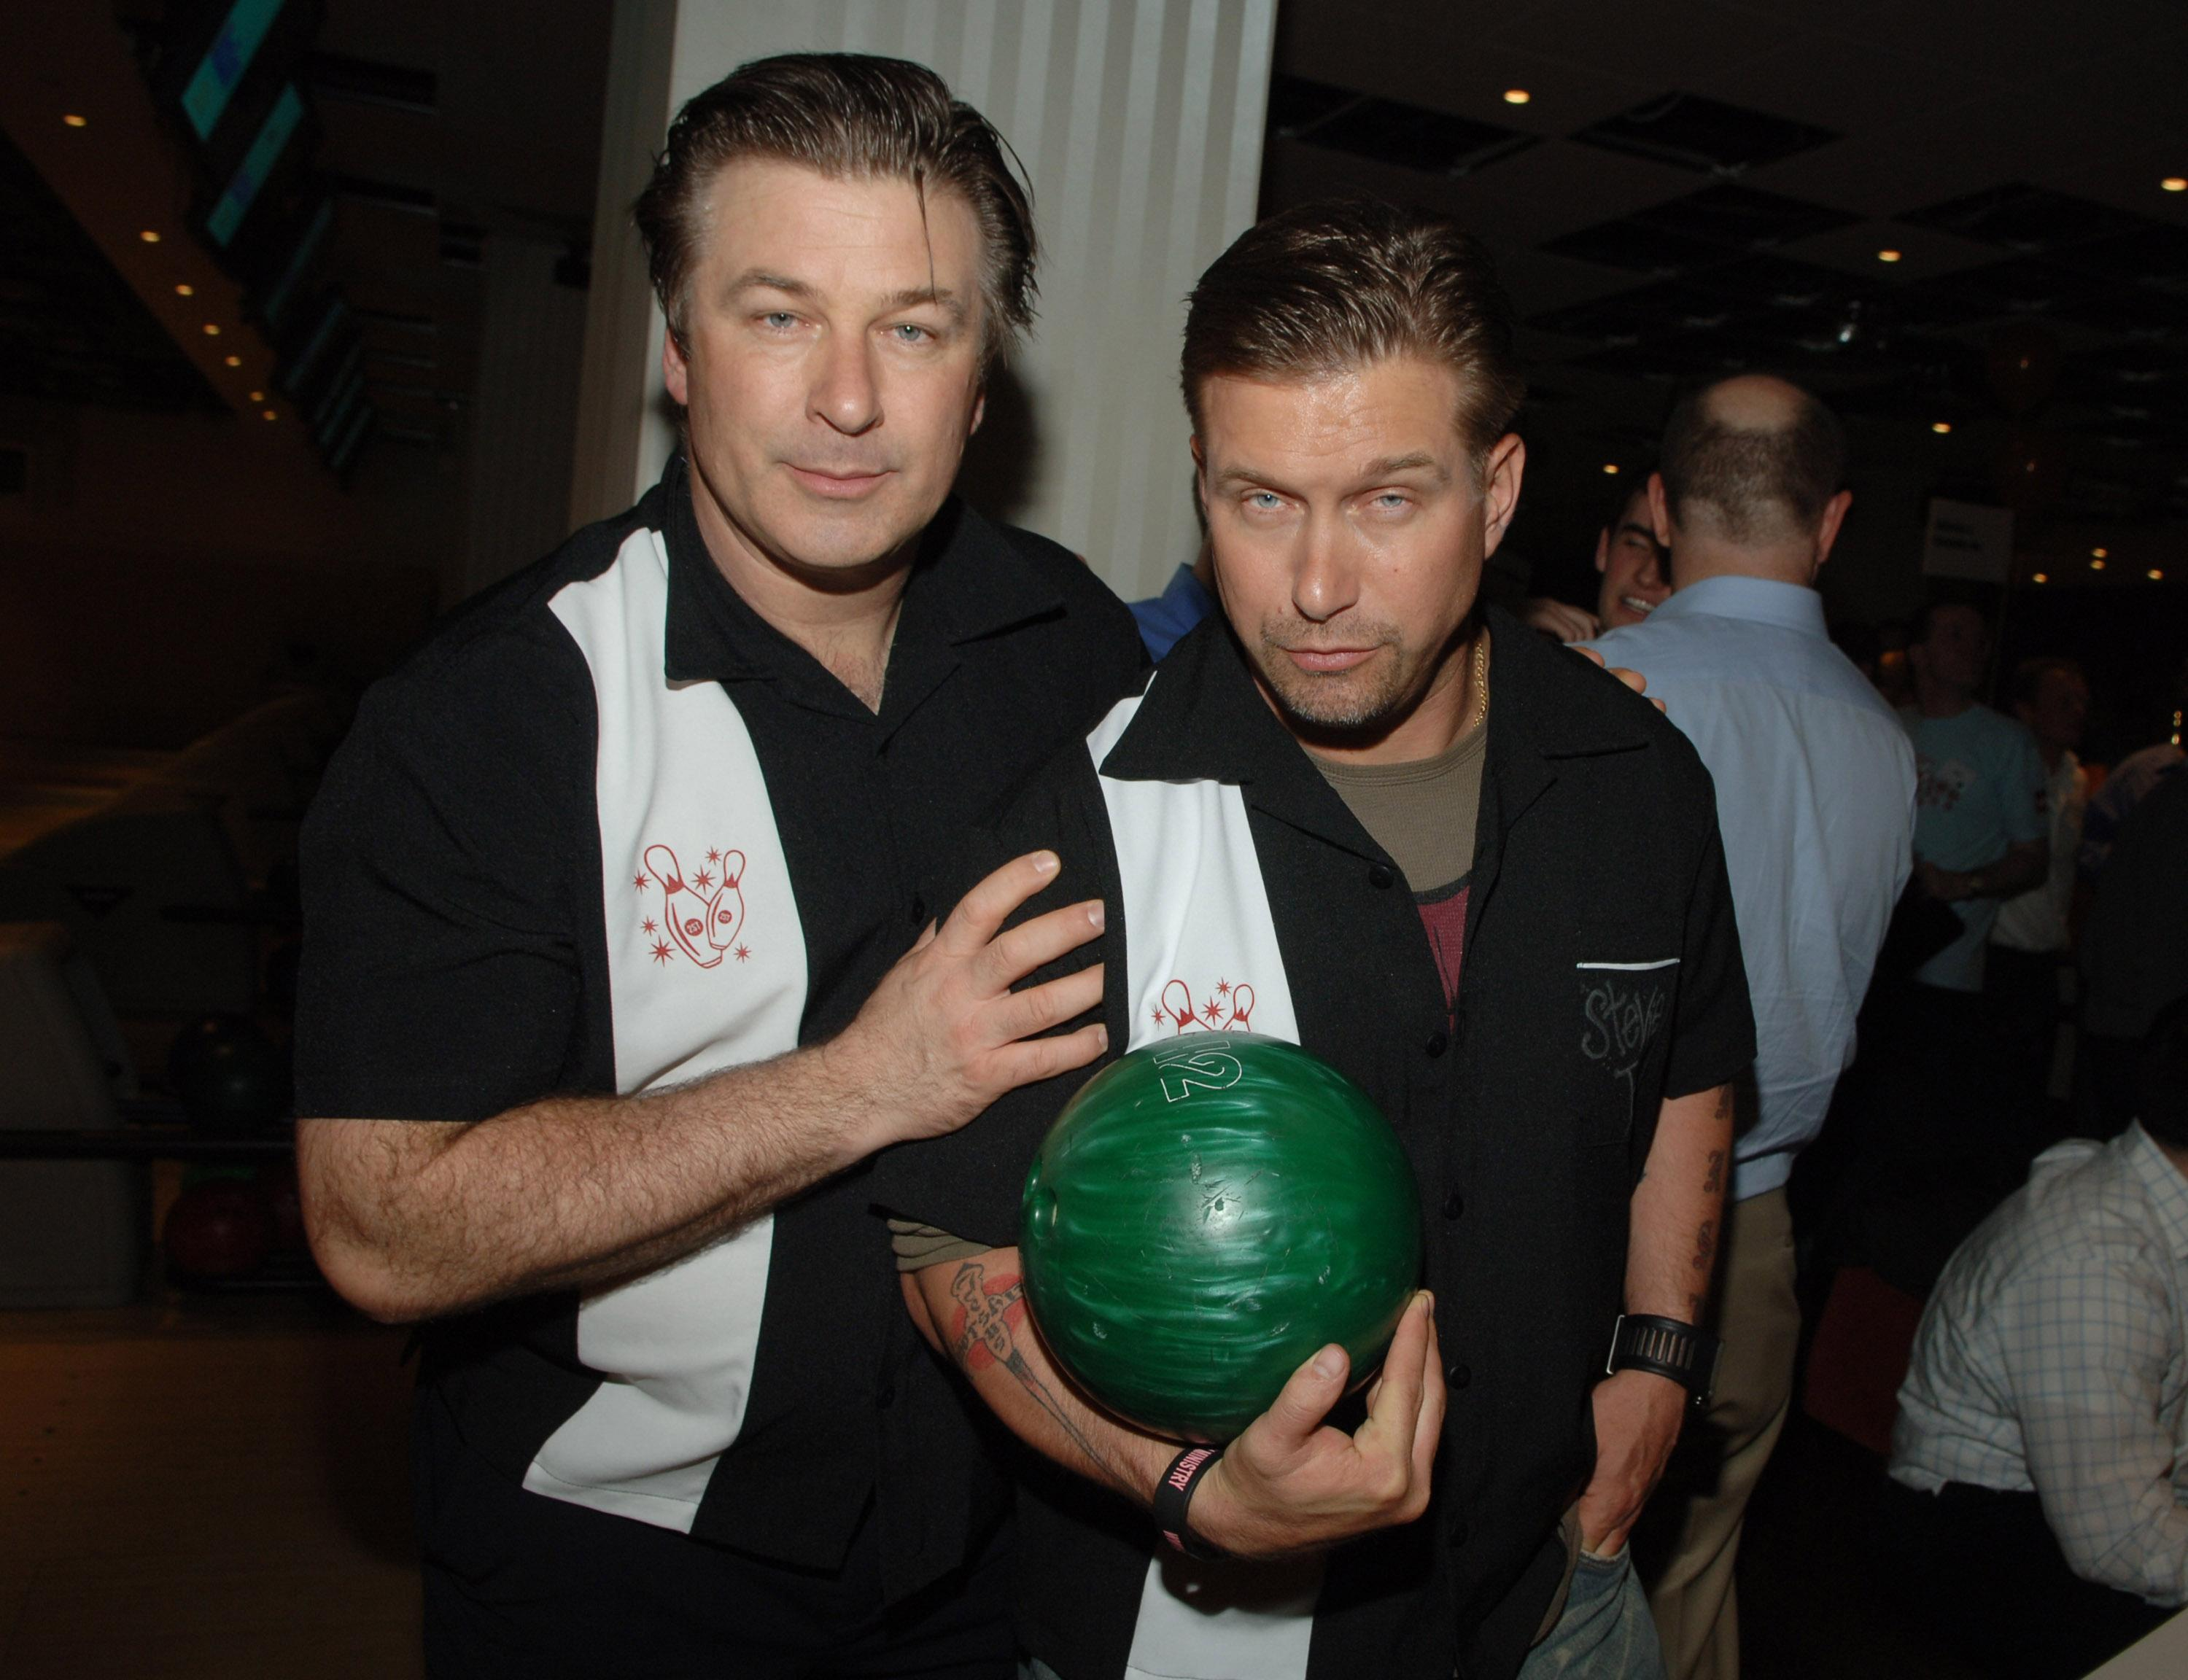 does-alec-baldwin-get-along-with-brothers-1-1568327894315.jpg